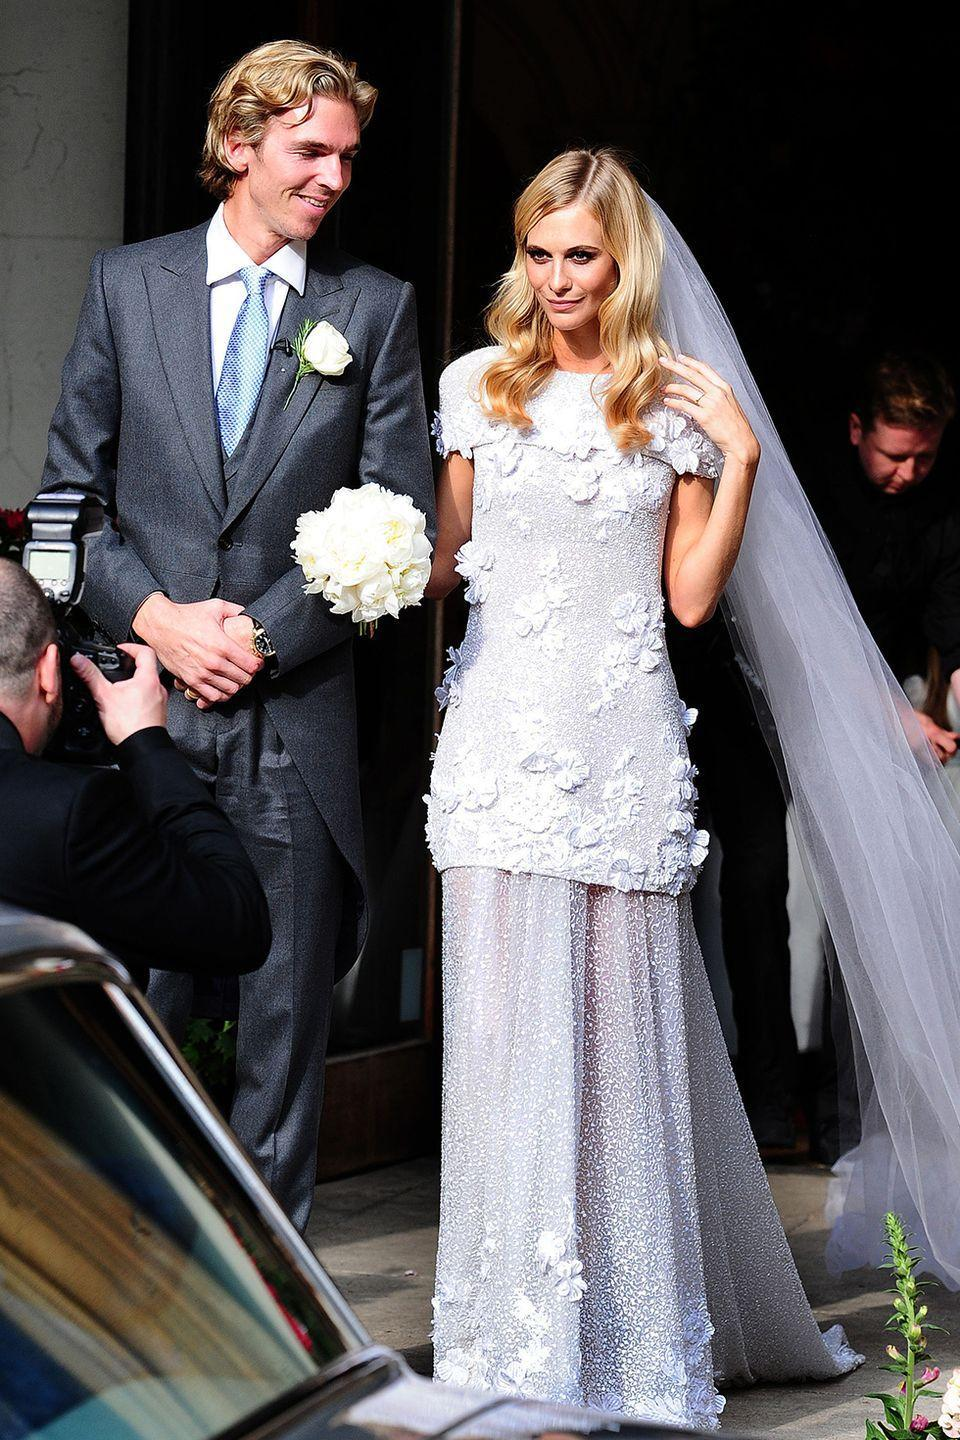 <p>Poppy married James Cook at St. Paul's Church in London. She went with a unique, '30s-inspired custom-made Chanel haute couture gown. Fun fact — Blake Lively wore a similar version of the dress back in 2009, but on the red carpet, not down the wedding aisle. </p>